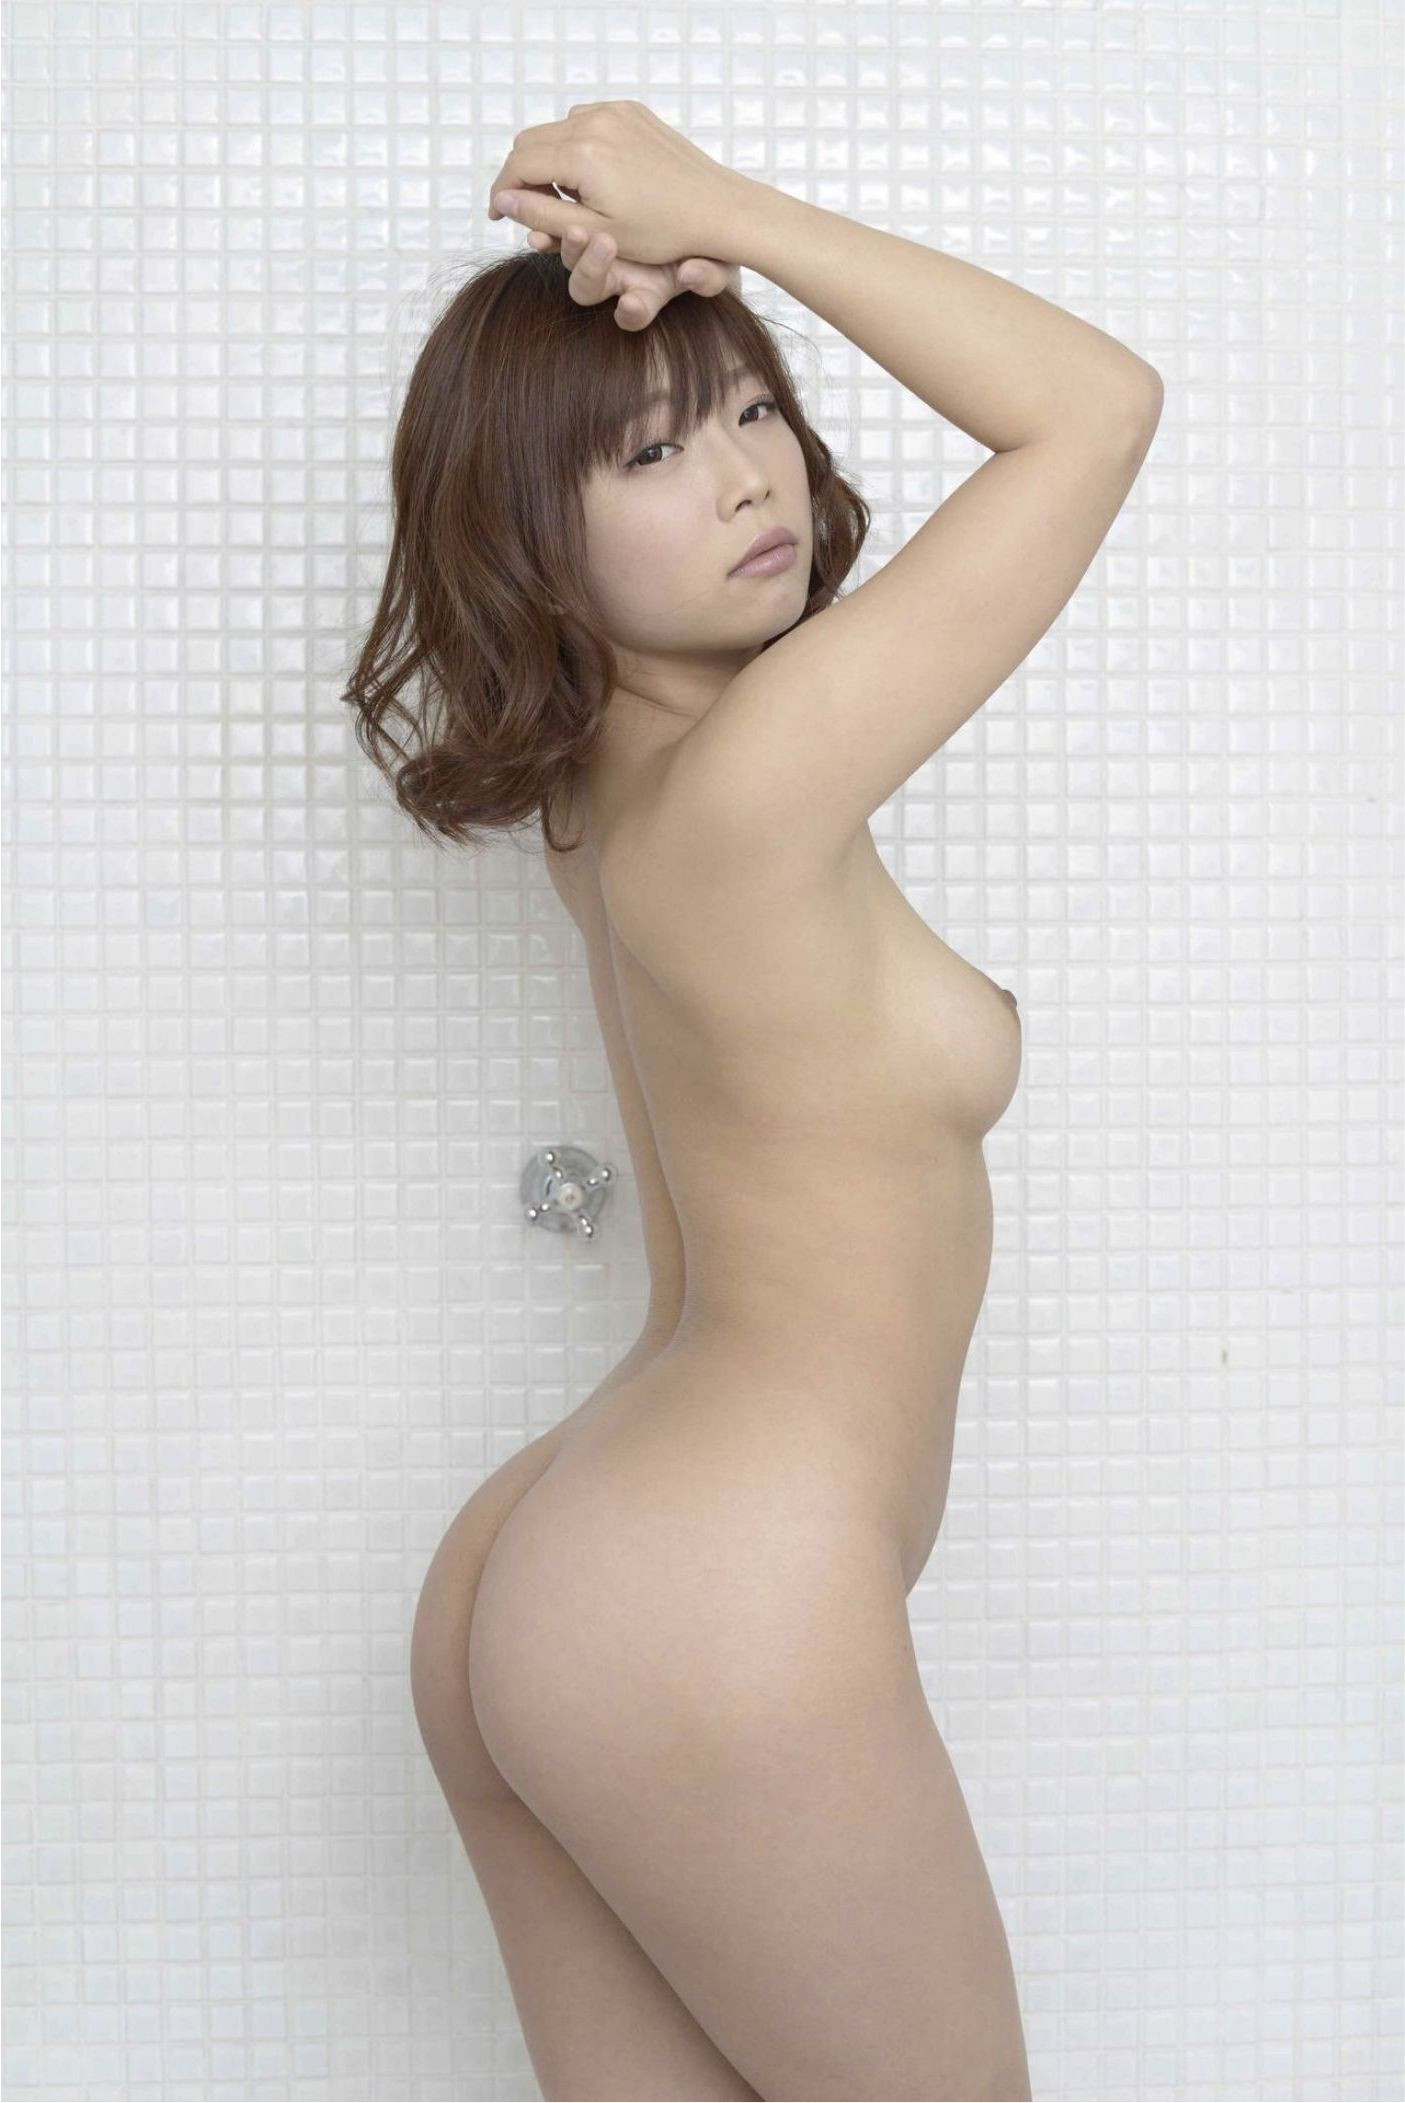 SOFT ON DEMAND GRAVURE COLLECTION 紗倉まな02 photo 057